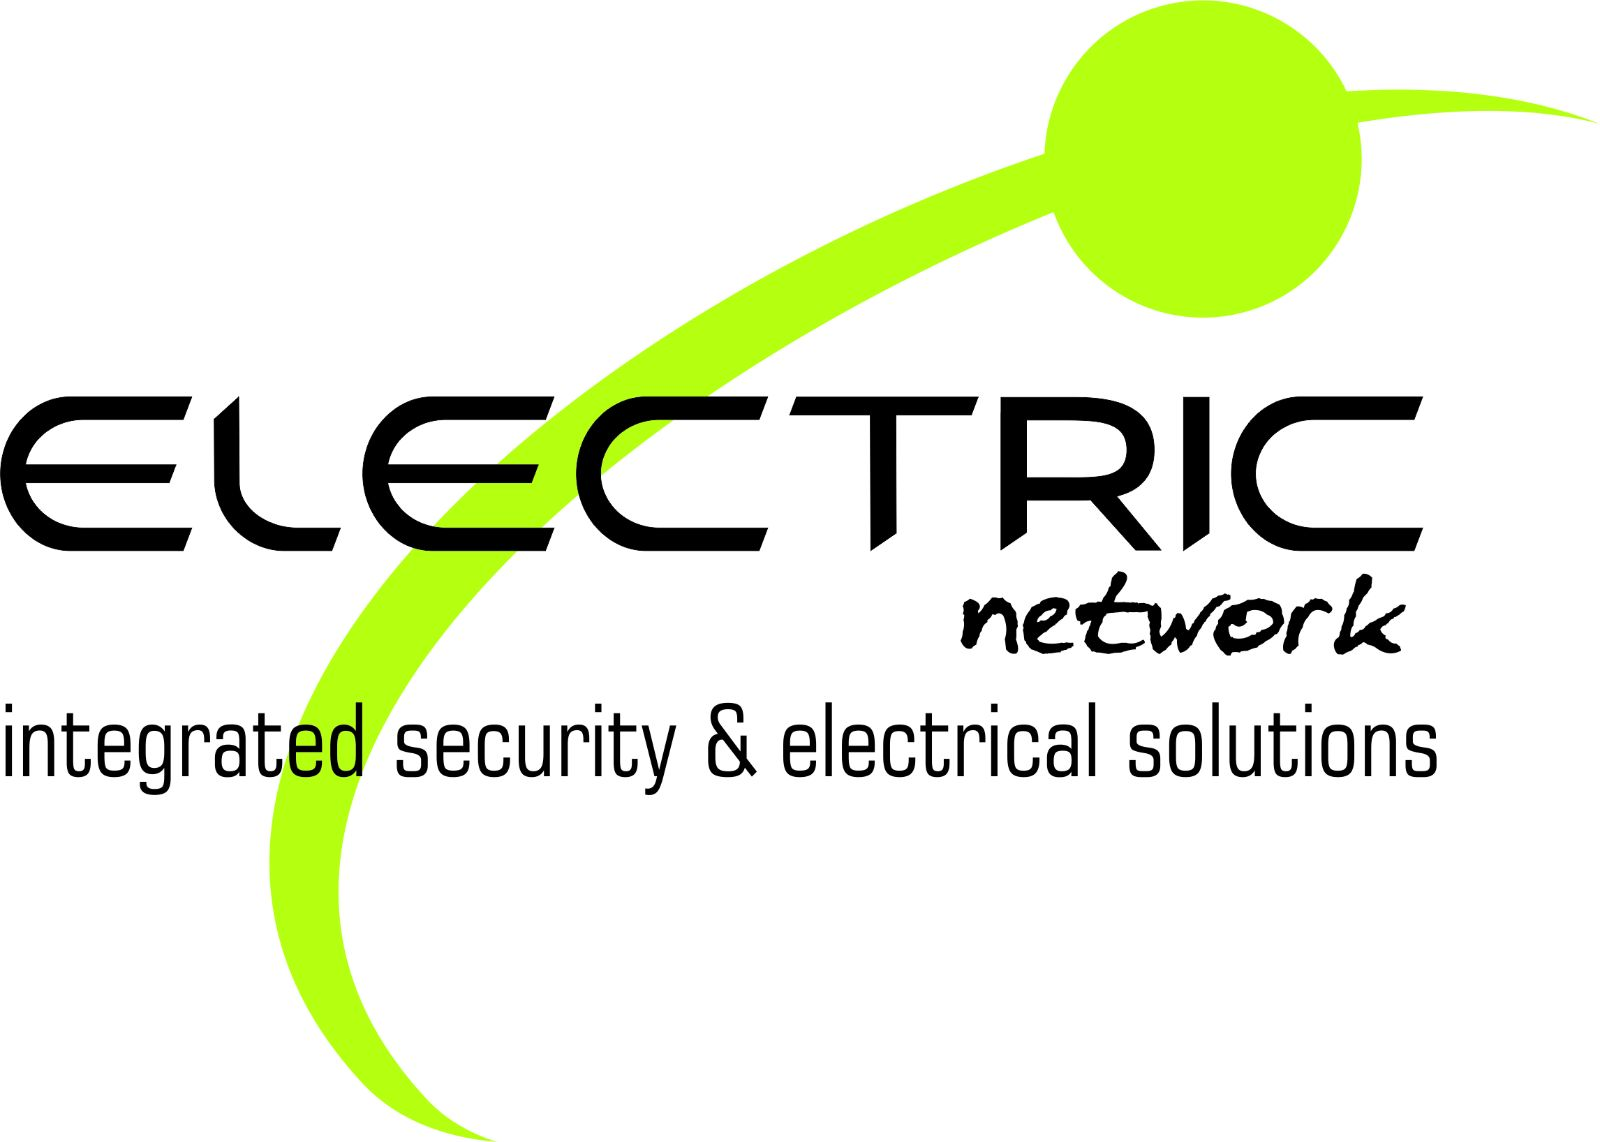 Electric-network-logo mare